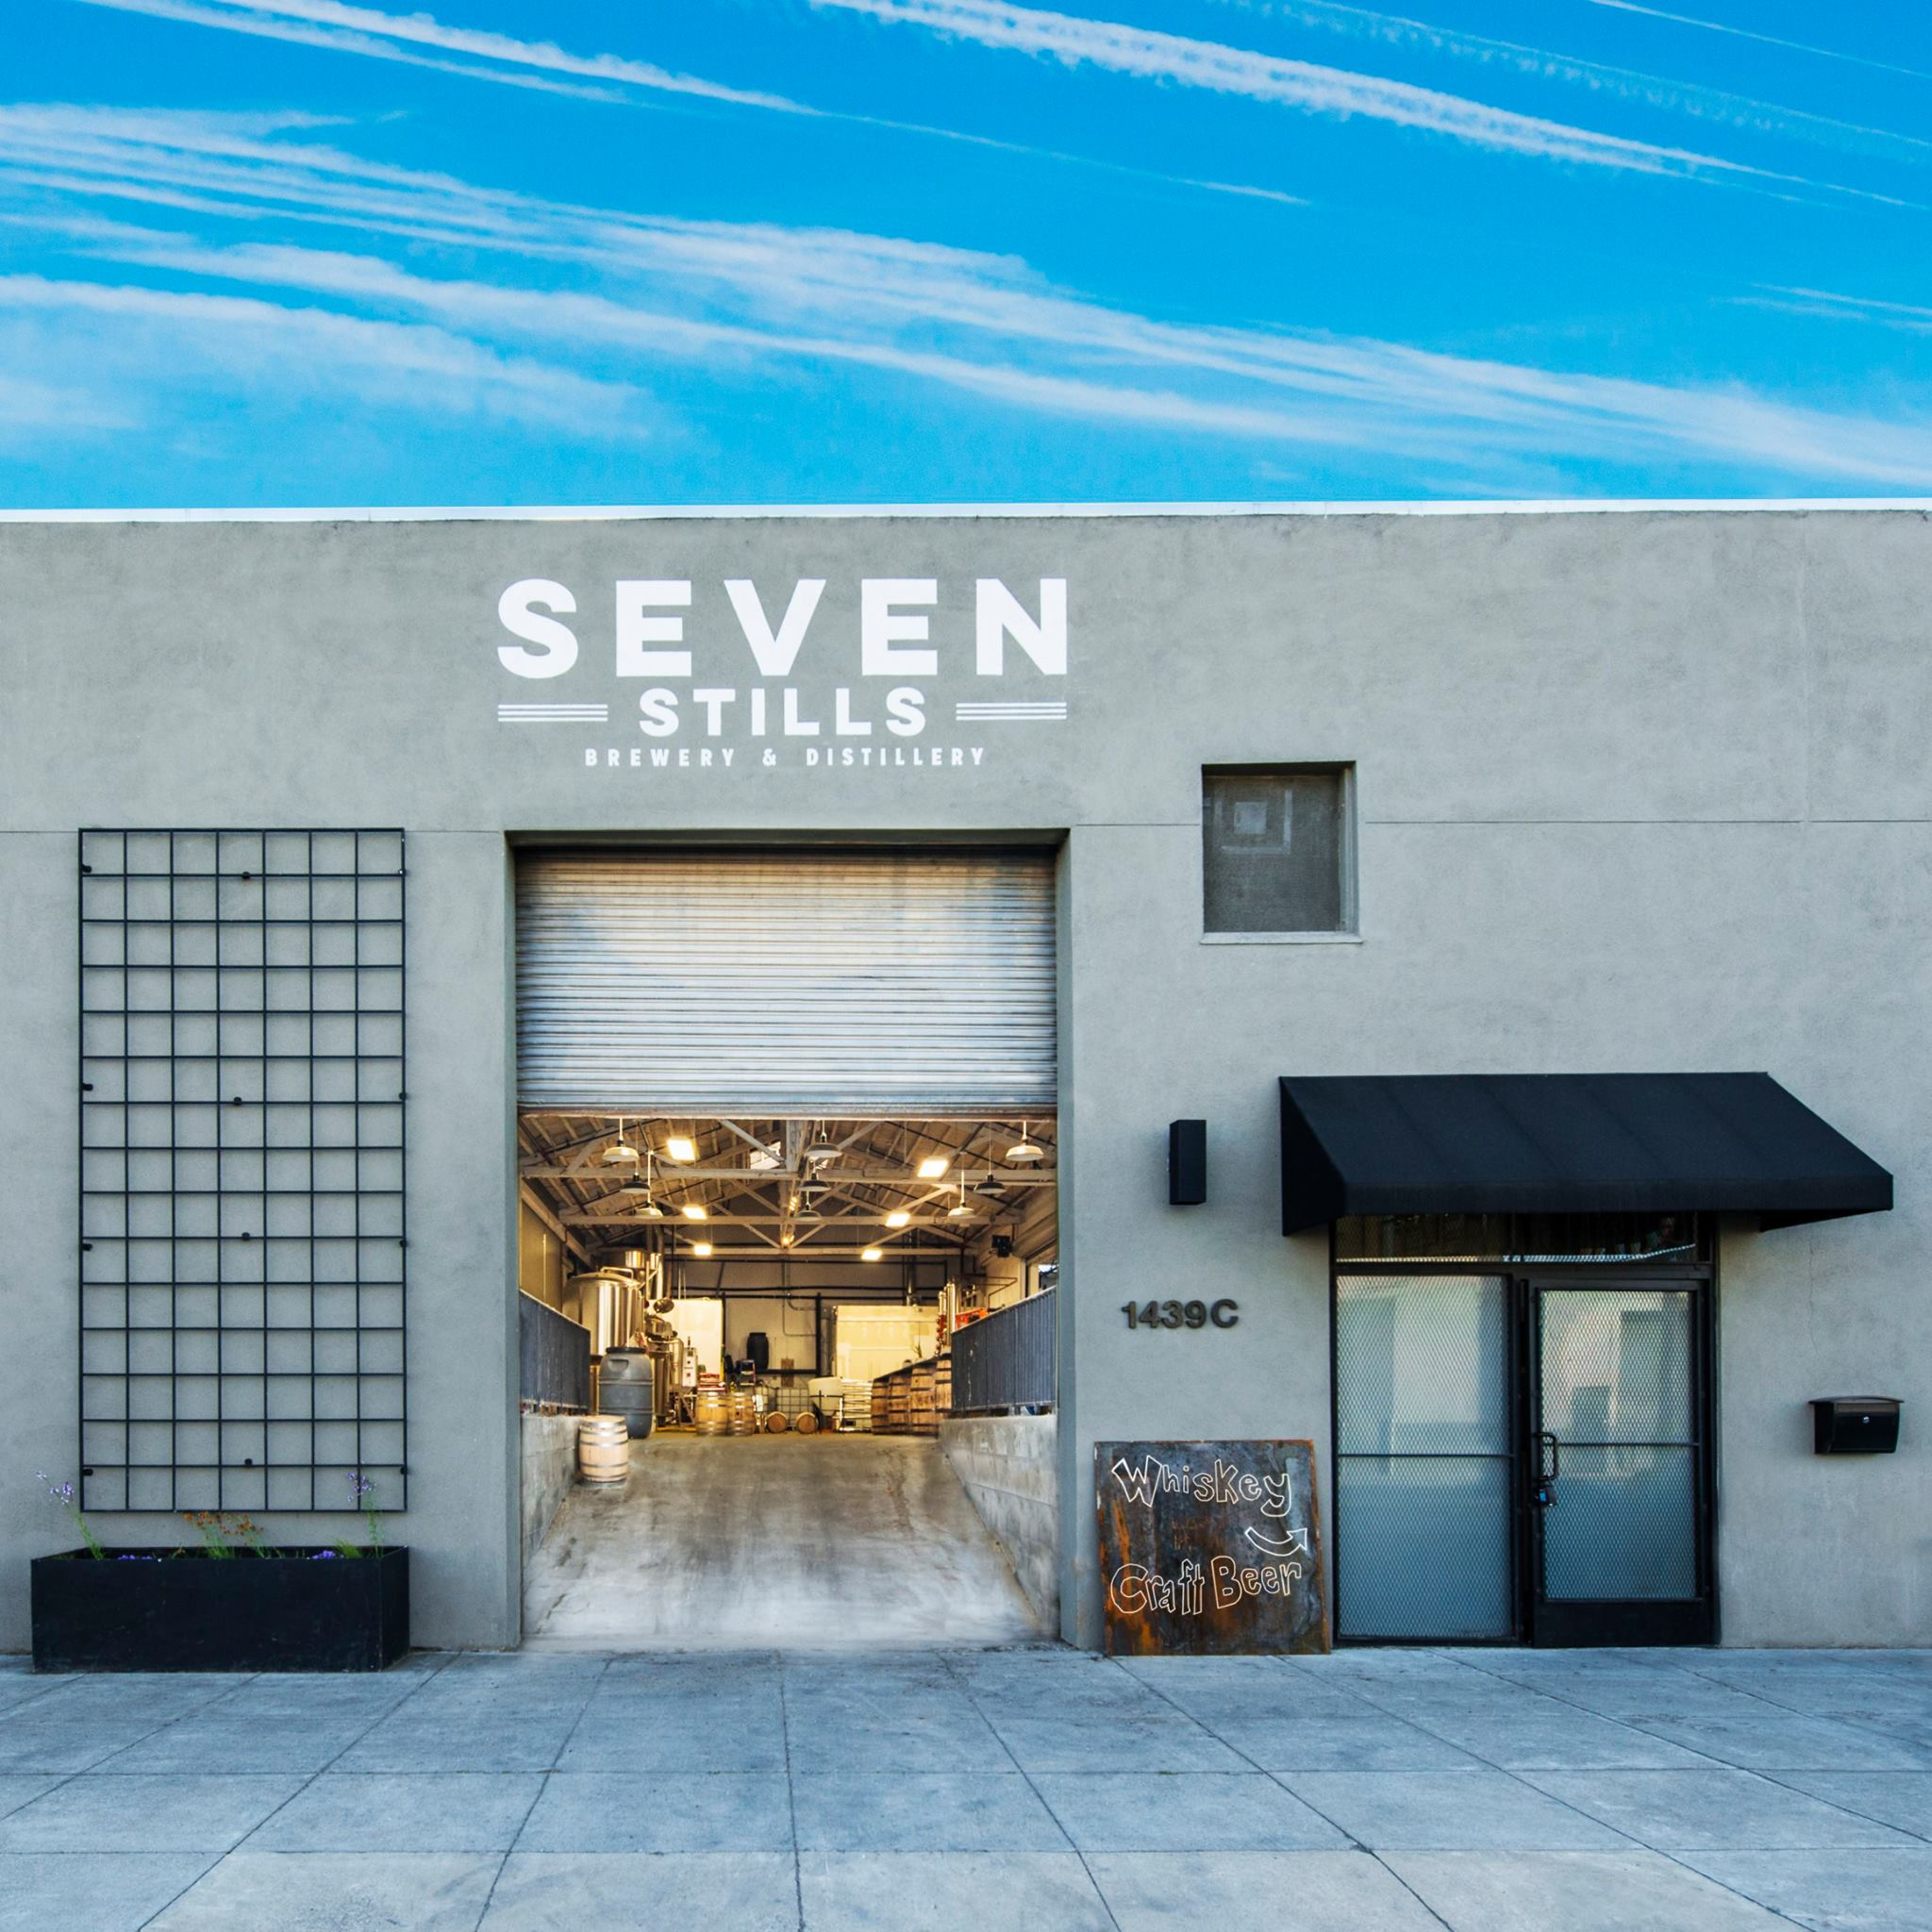 Seven Stills Brewery & Distillery's split facilities in SF cross-pollinates craft beer and craft distilling.